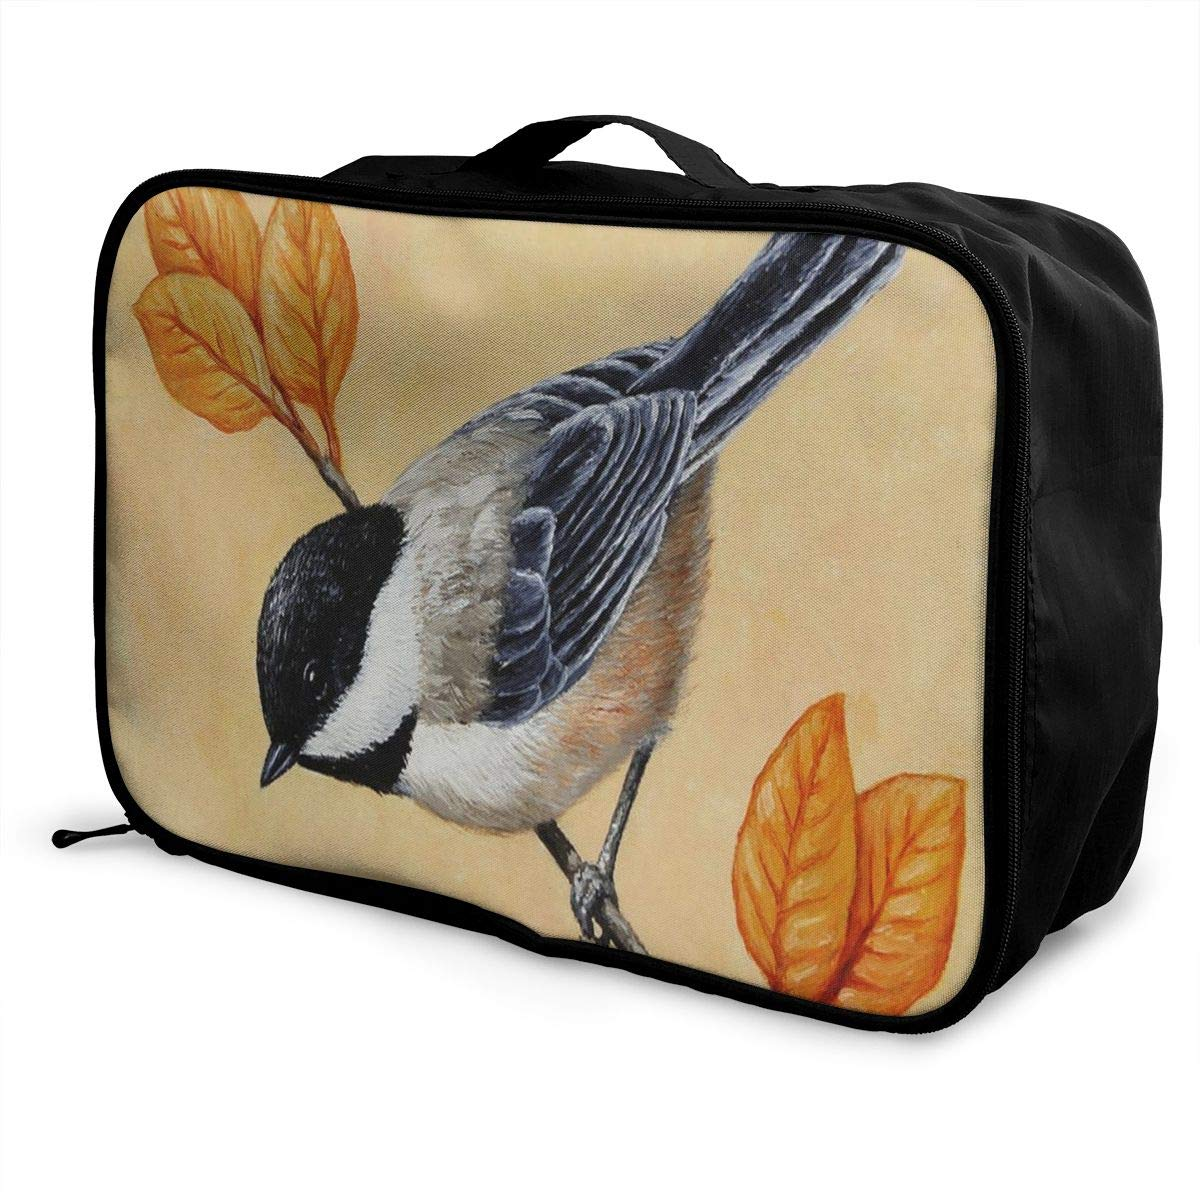 Lightweight Large Capacity Portable Luggage Bag Chickadee And Autumn Leaves Painting Travel Waterproof Foldable Storage Carry Tote Bag